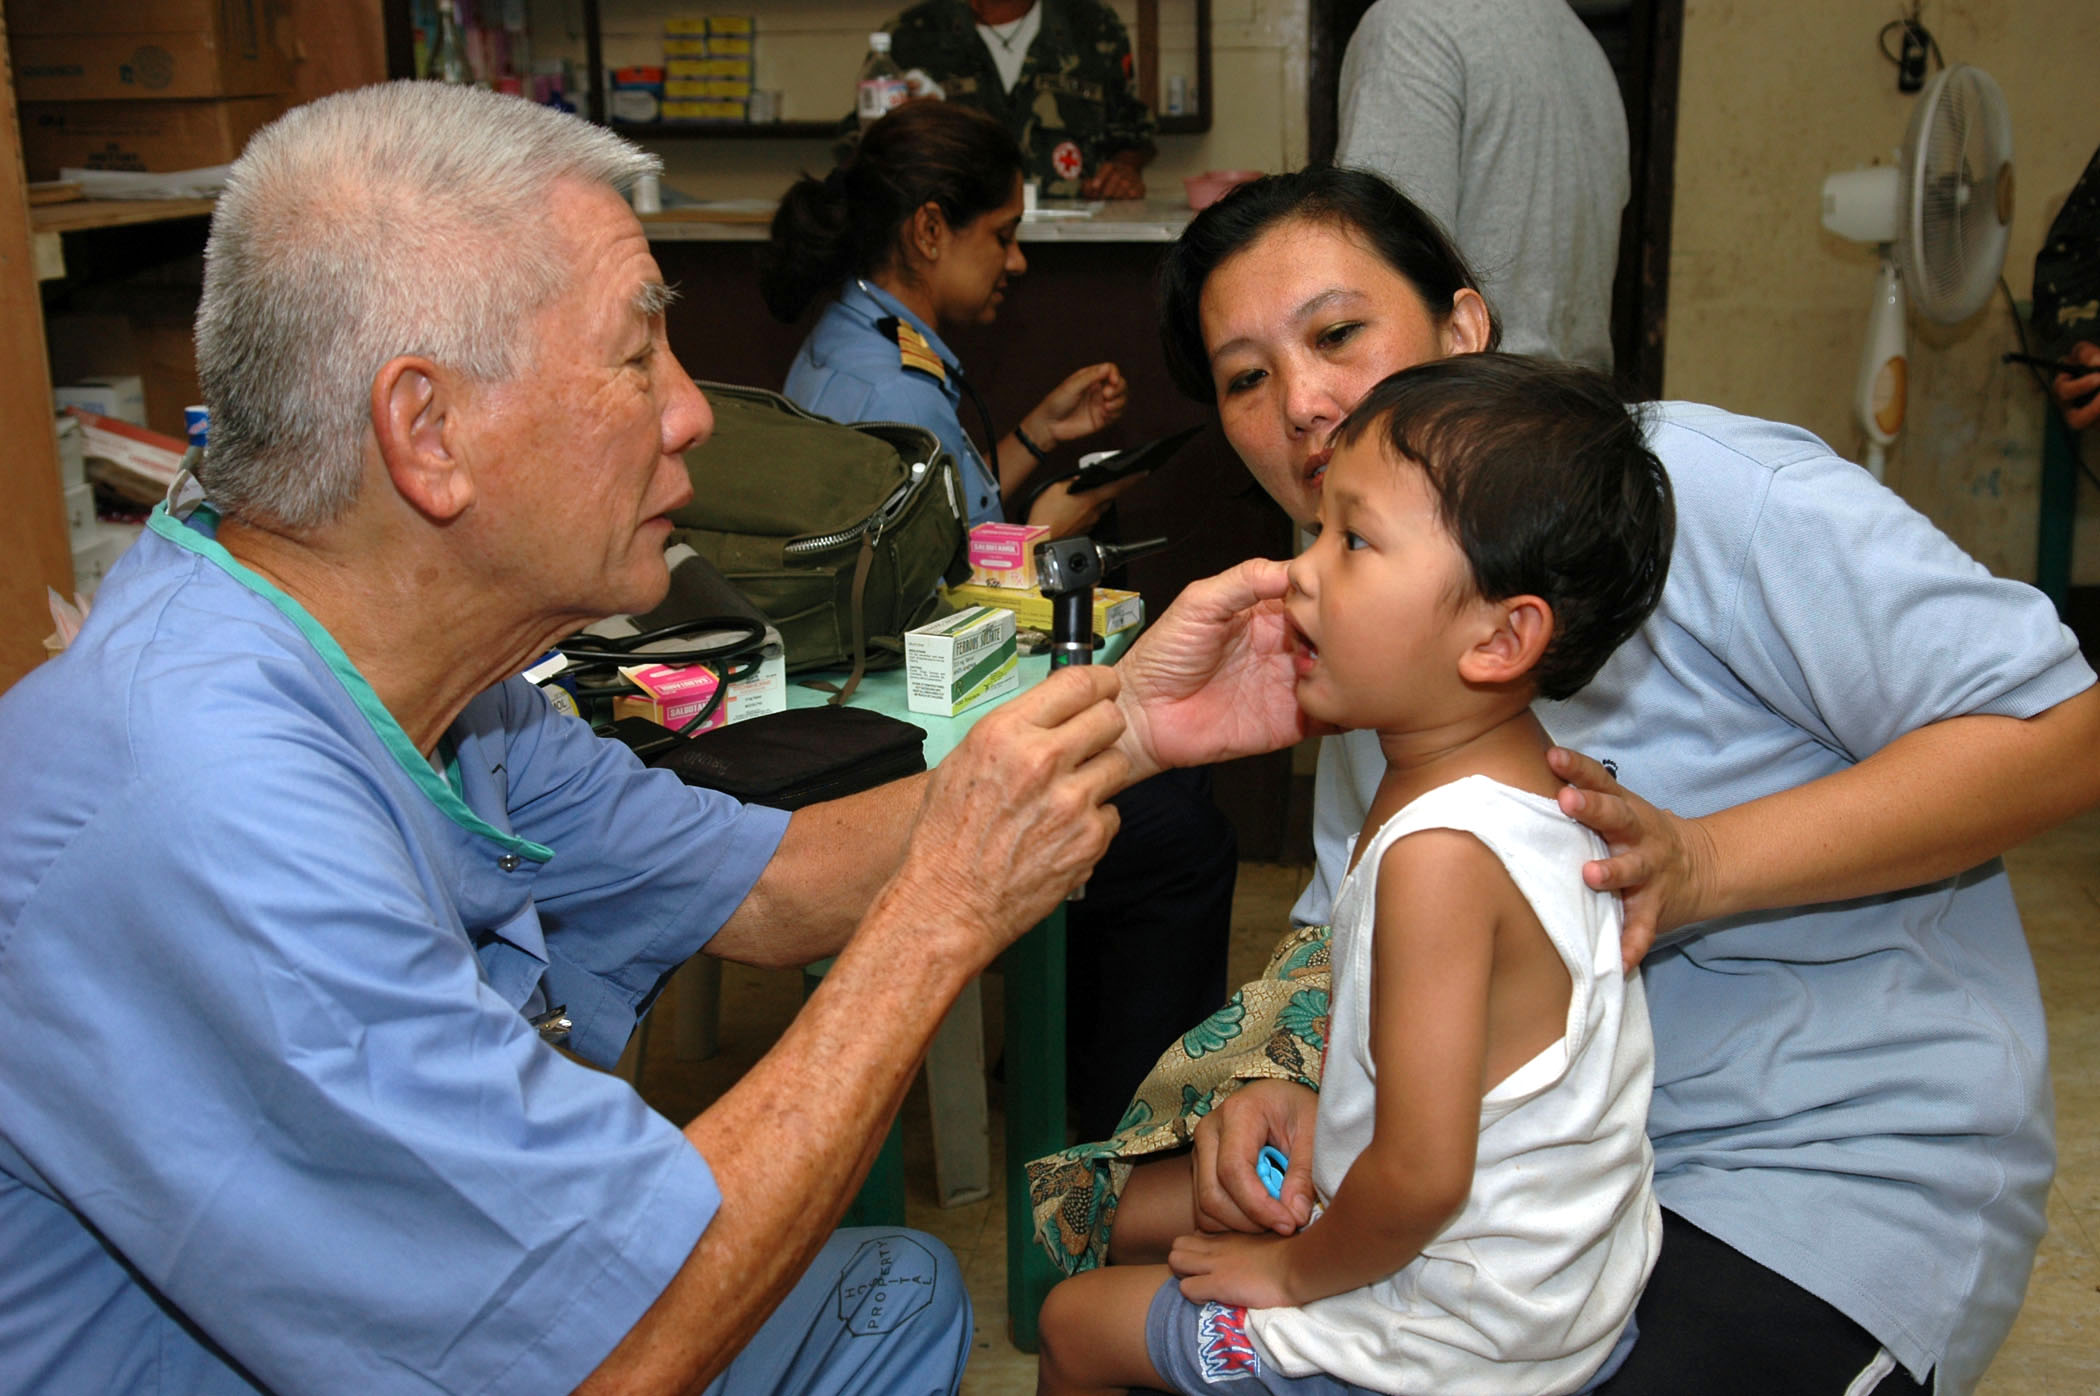 US Navy 060606-N-3714J-080 Victor Dizon, a doctor with Aloha Medical Mission, examines a boy at Camp Batista during a Medical and Dental Civil Action Project hosted by the U.S. Military Sealift Command (MSC) Hospital ship USNS.jpg